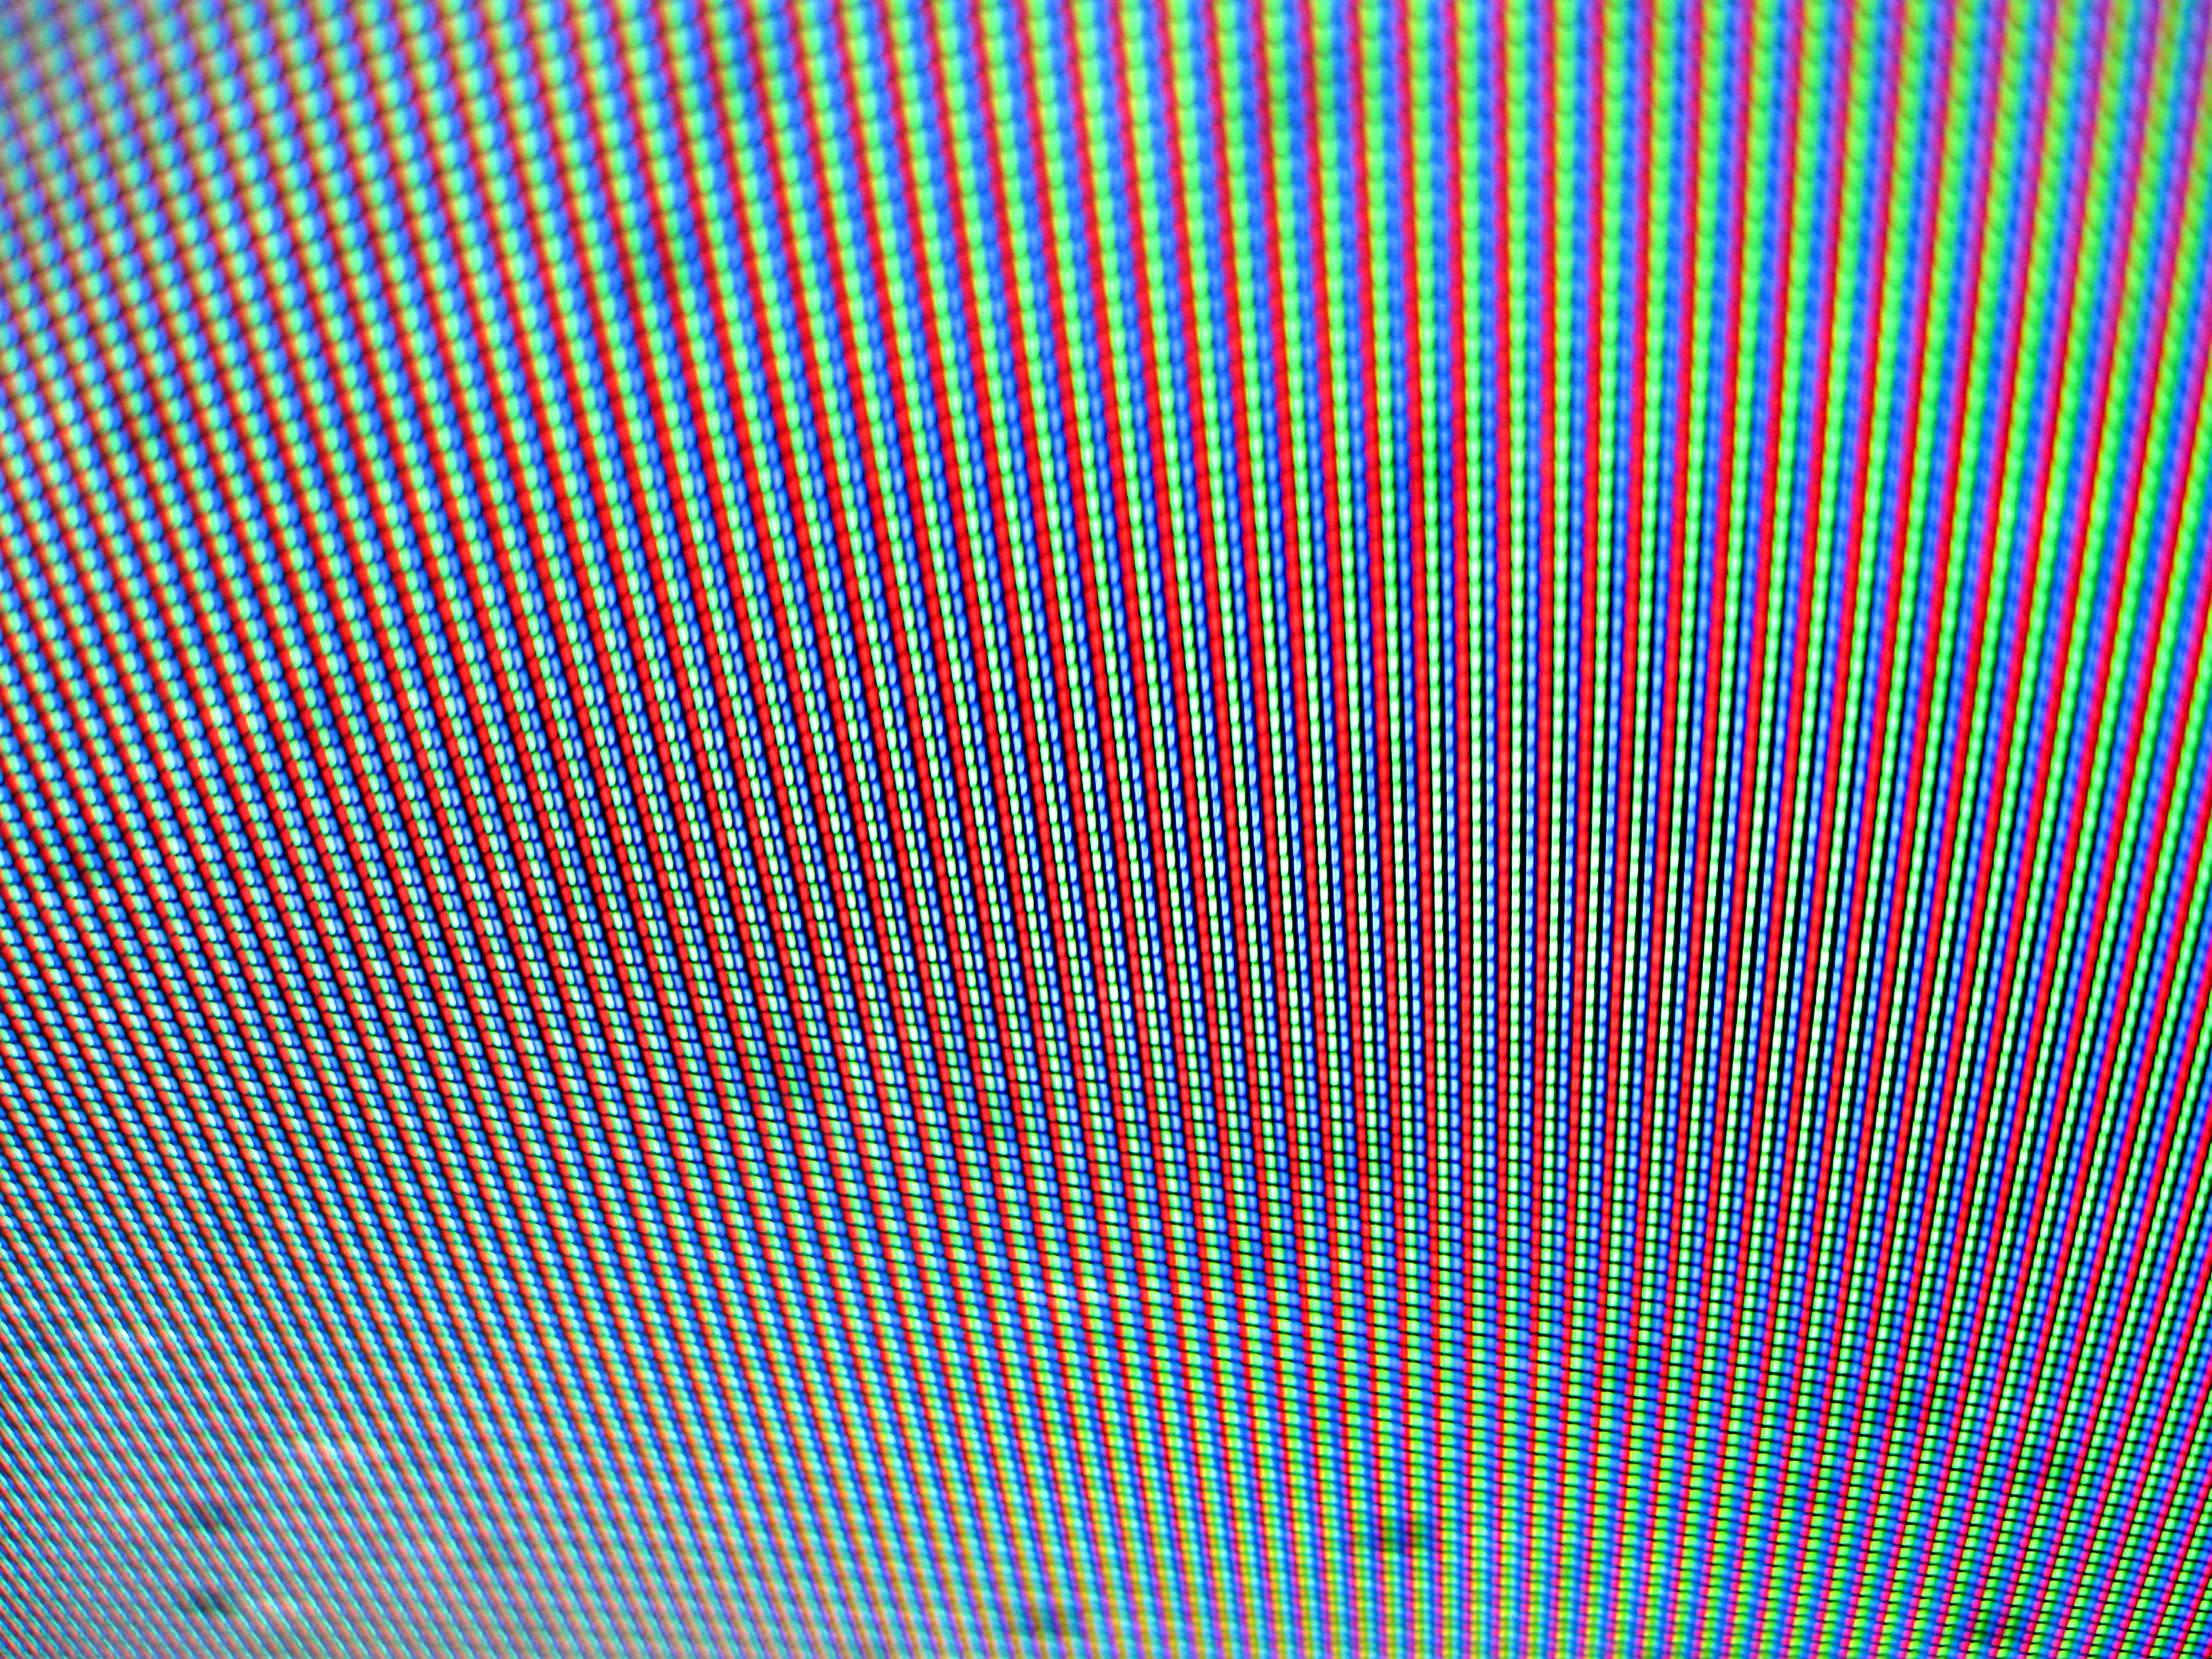 Abstract image of television pixels